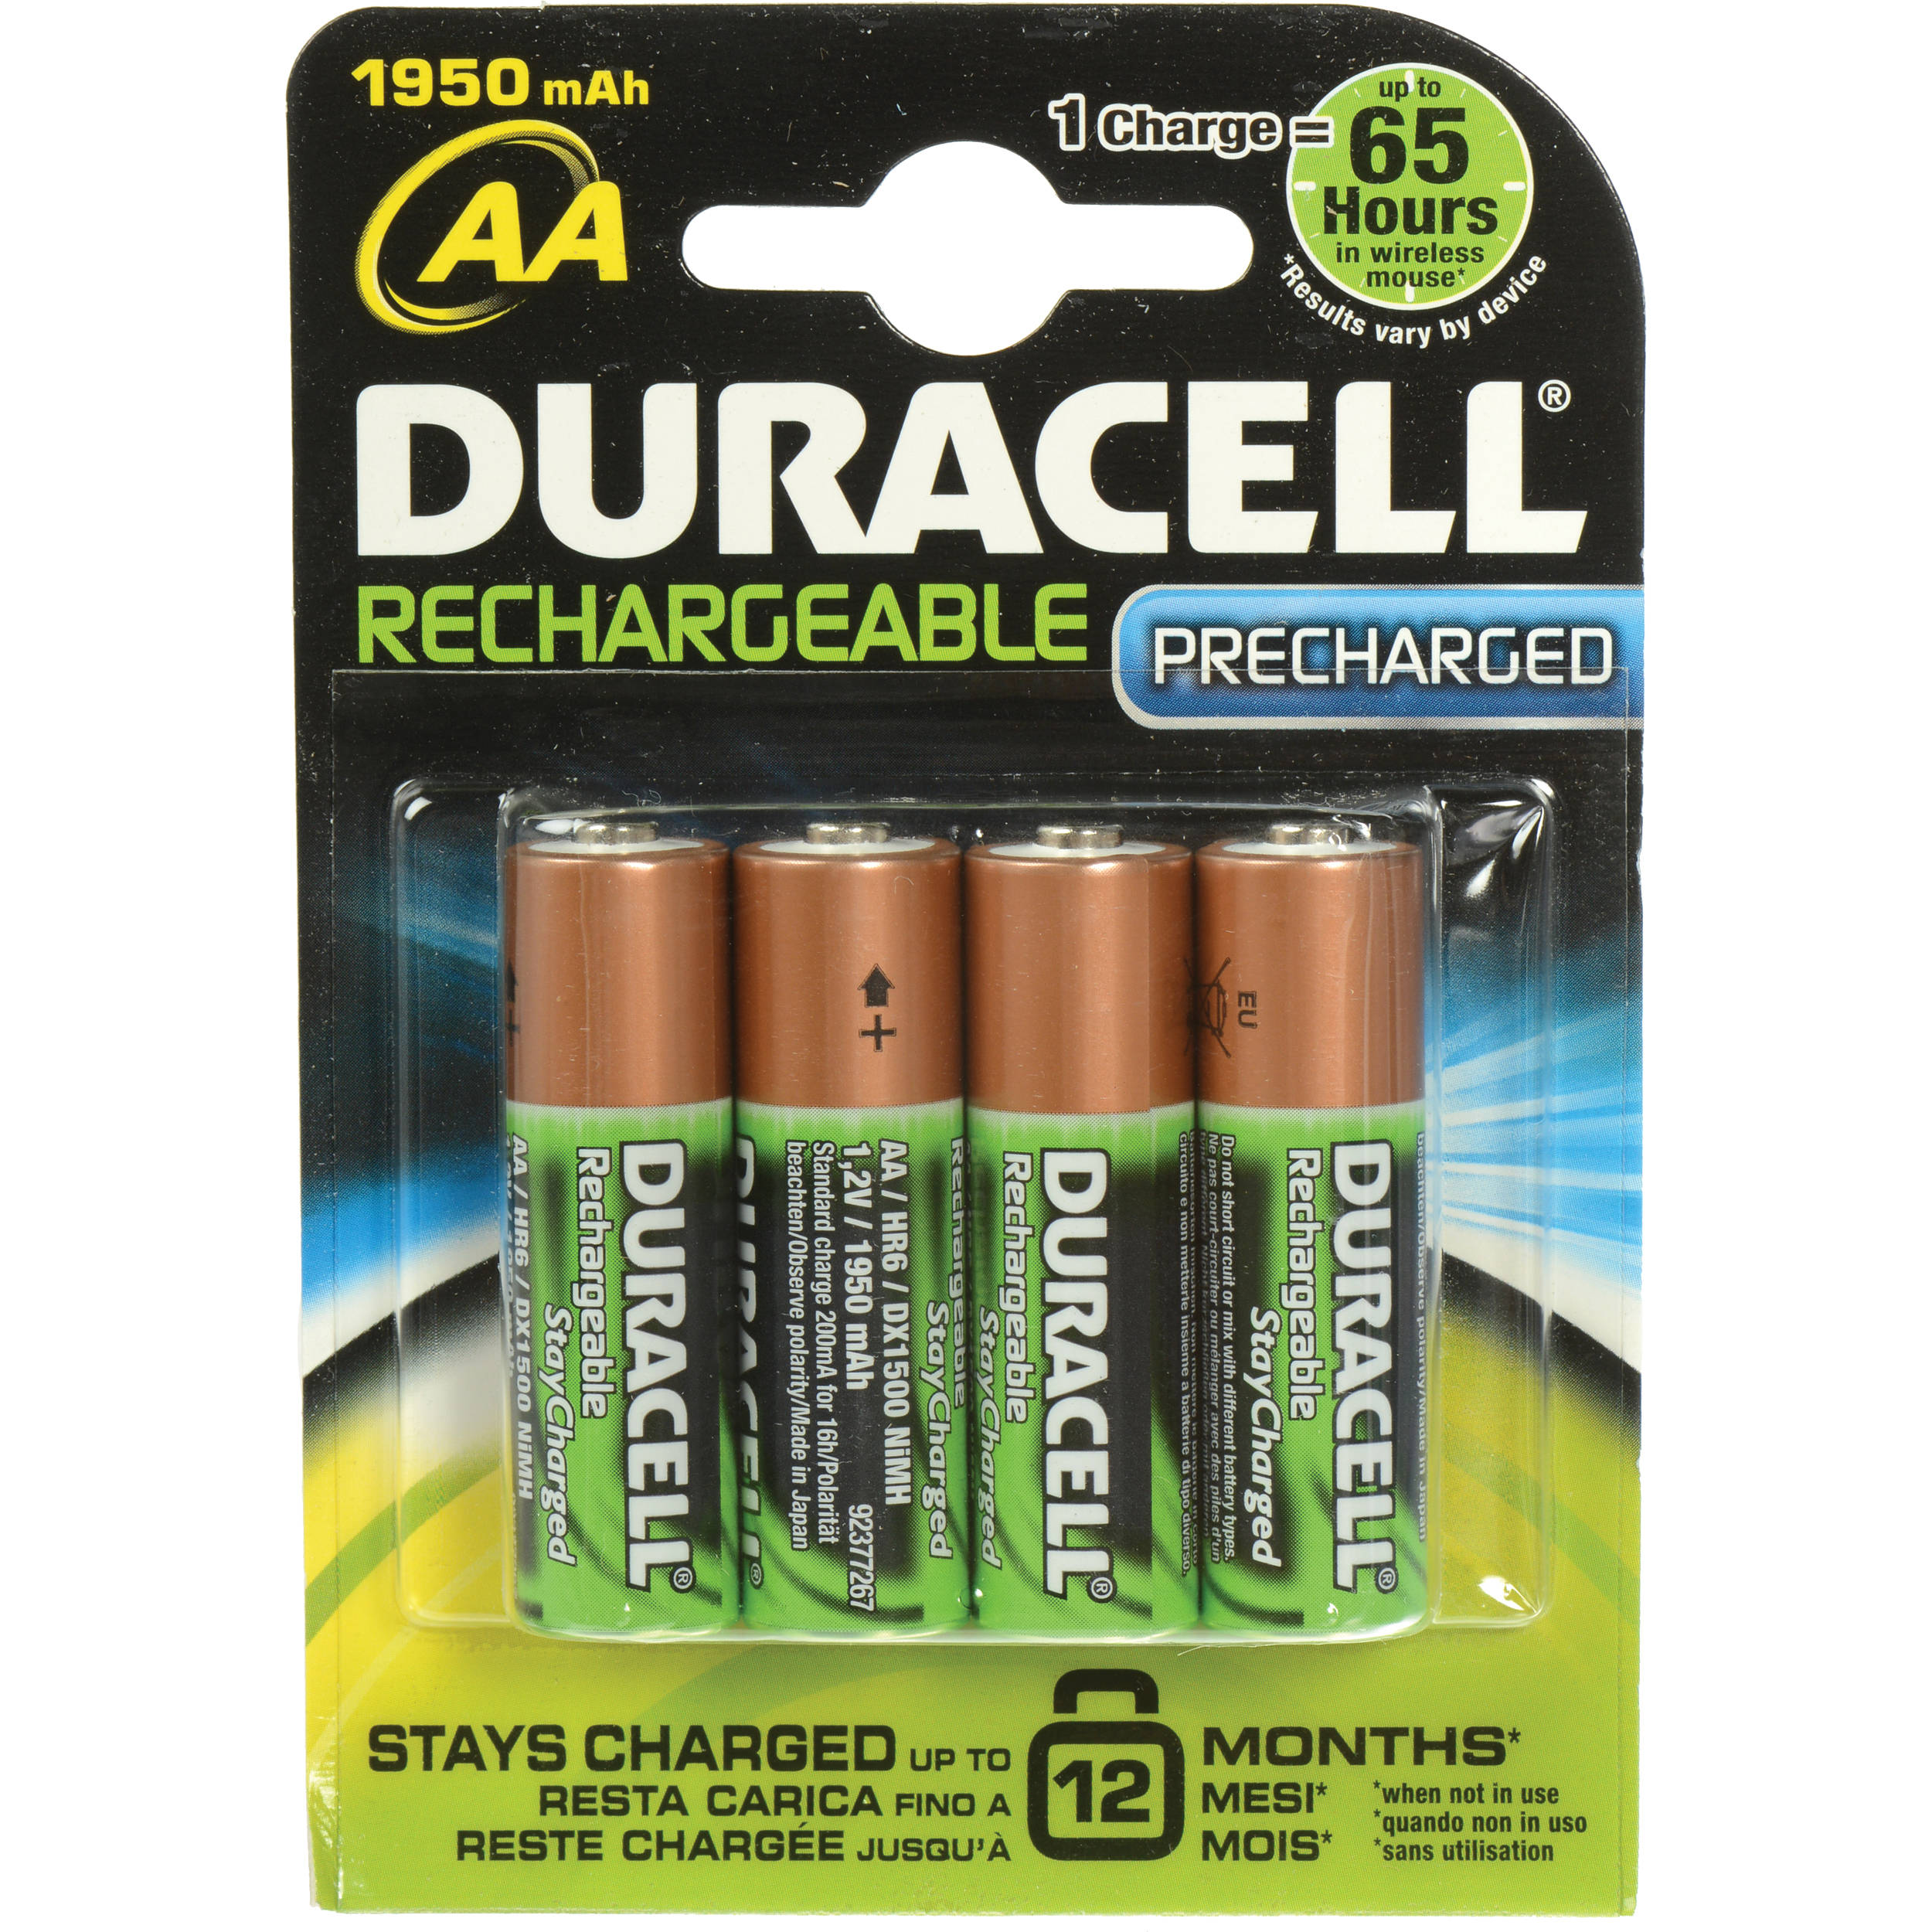 855f6491691 Duracell StayCharged AA NiMH Rechargeable Batteries (4-Pack, 1.2V, 1950mAh)